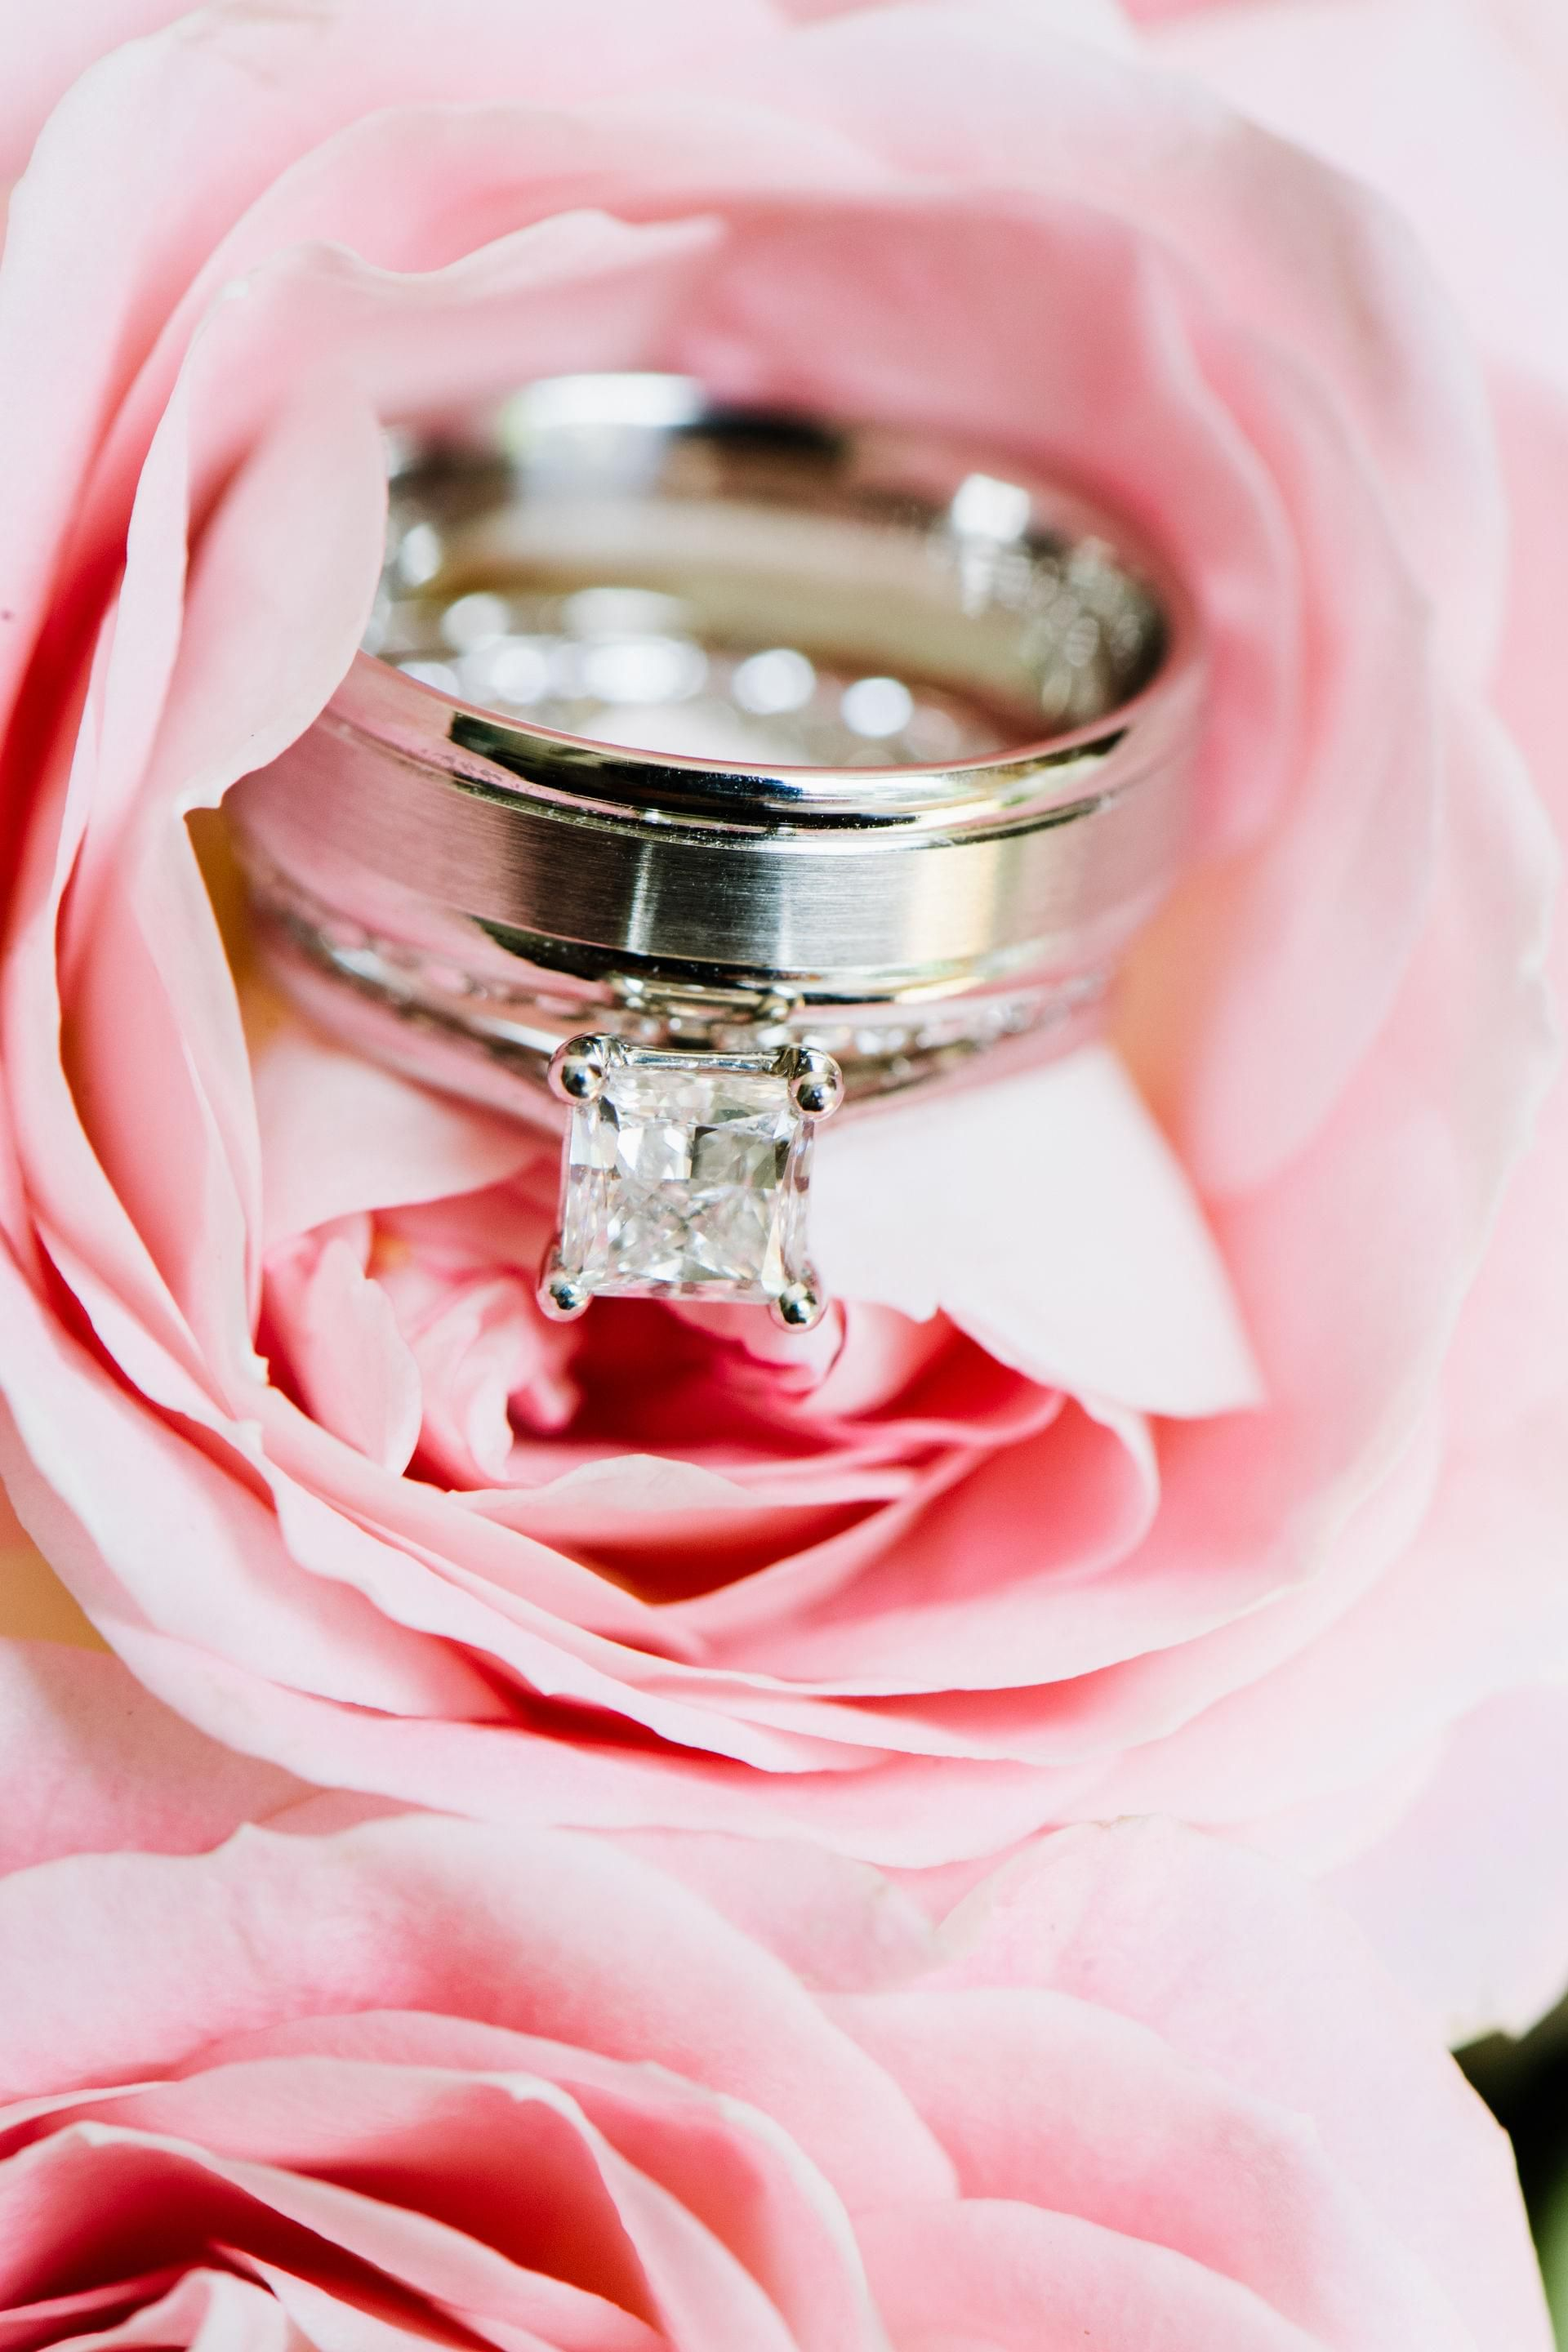 The Smarter Way to Wed | Ring, Engagement and Wedding